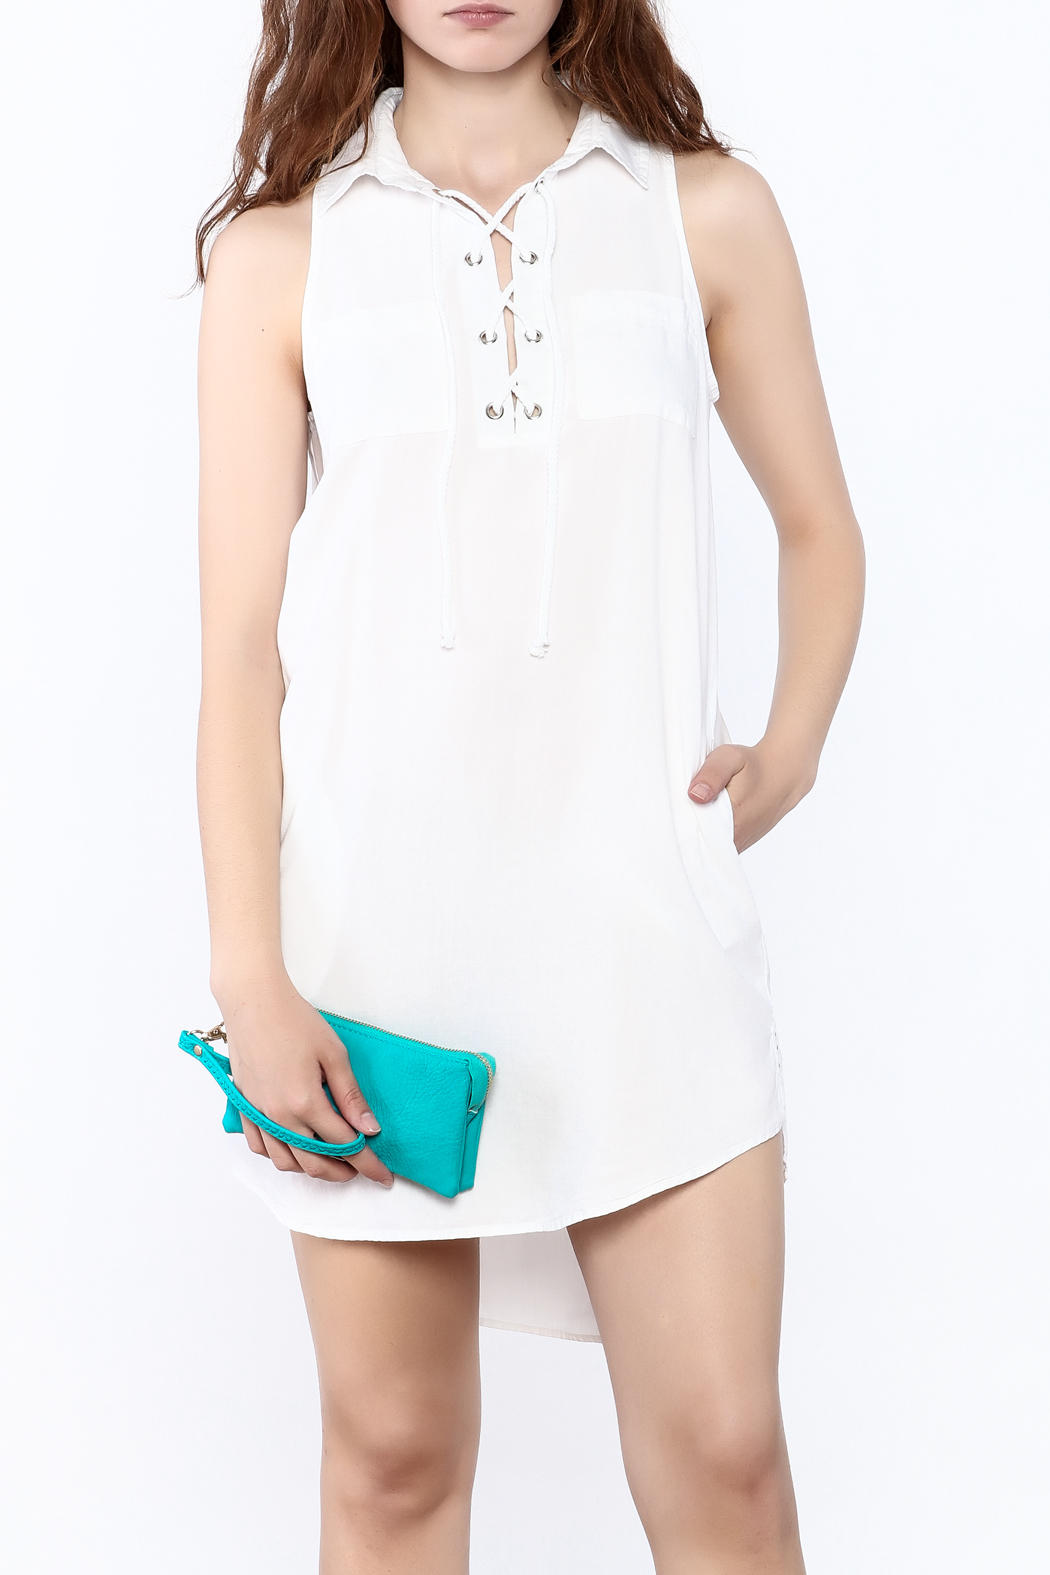 Velvet Heart White Sleeveless Dress - Front Cropped Image